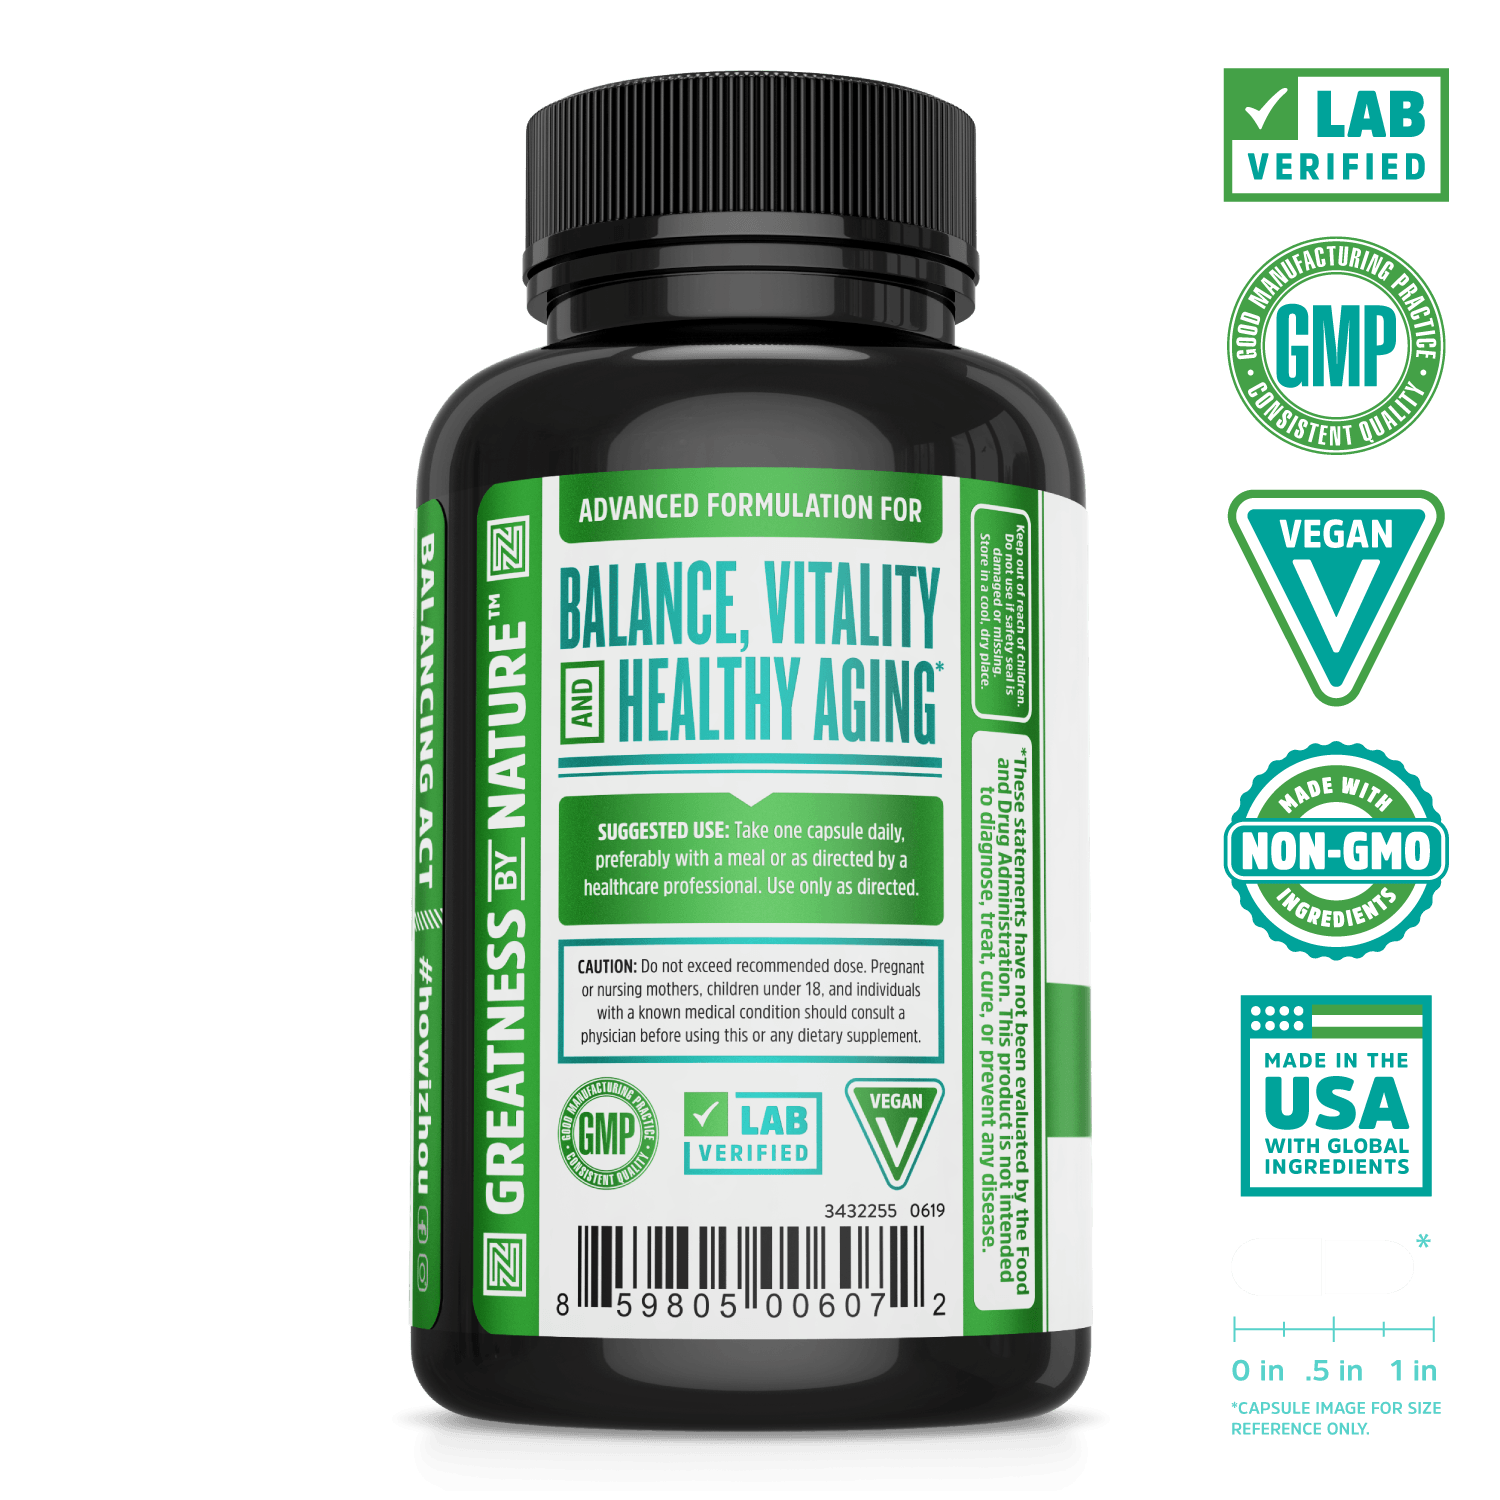 Hormonal Balance Complex with activated broccoli extract from Zhou Nutrition. Bottle side. Lab verified, good manufacturing practices, vegan, made with non-GMO ingredients, made in the USA with global ingredients.